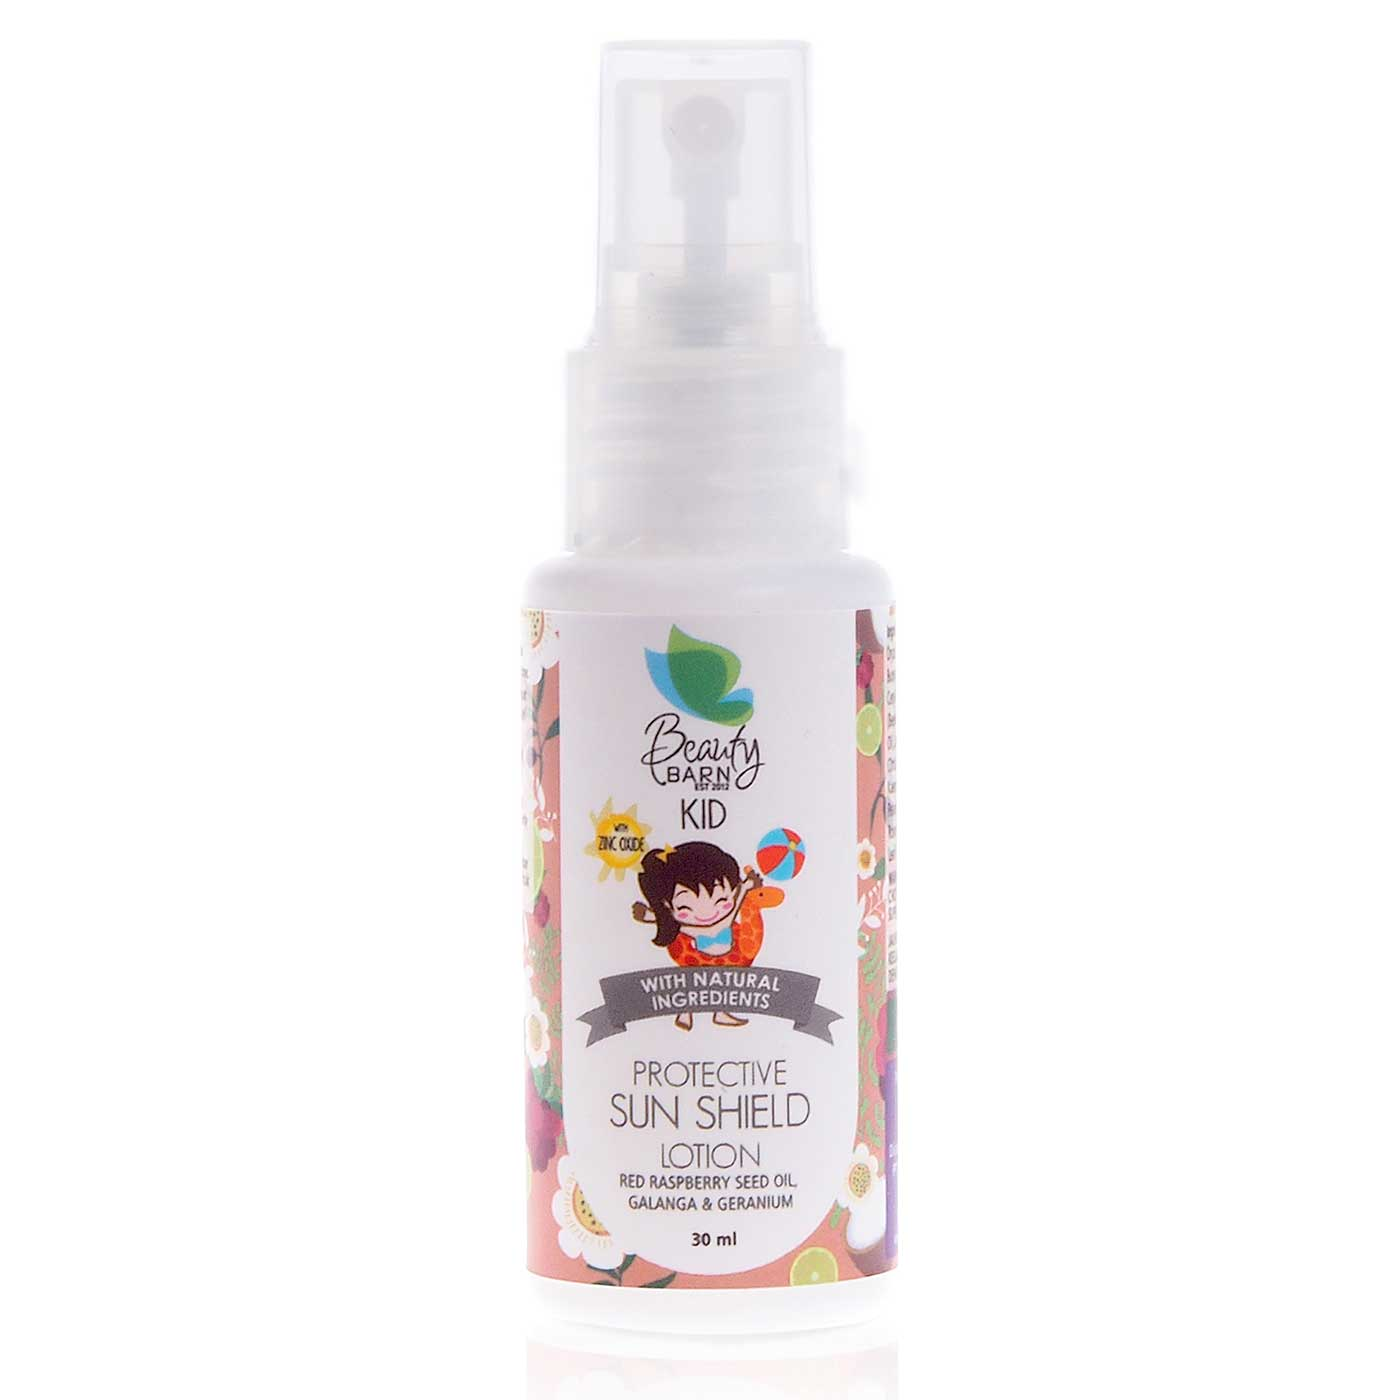 Beauty Barn Kid - Sun Shield 30ml